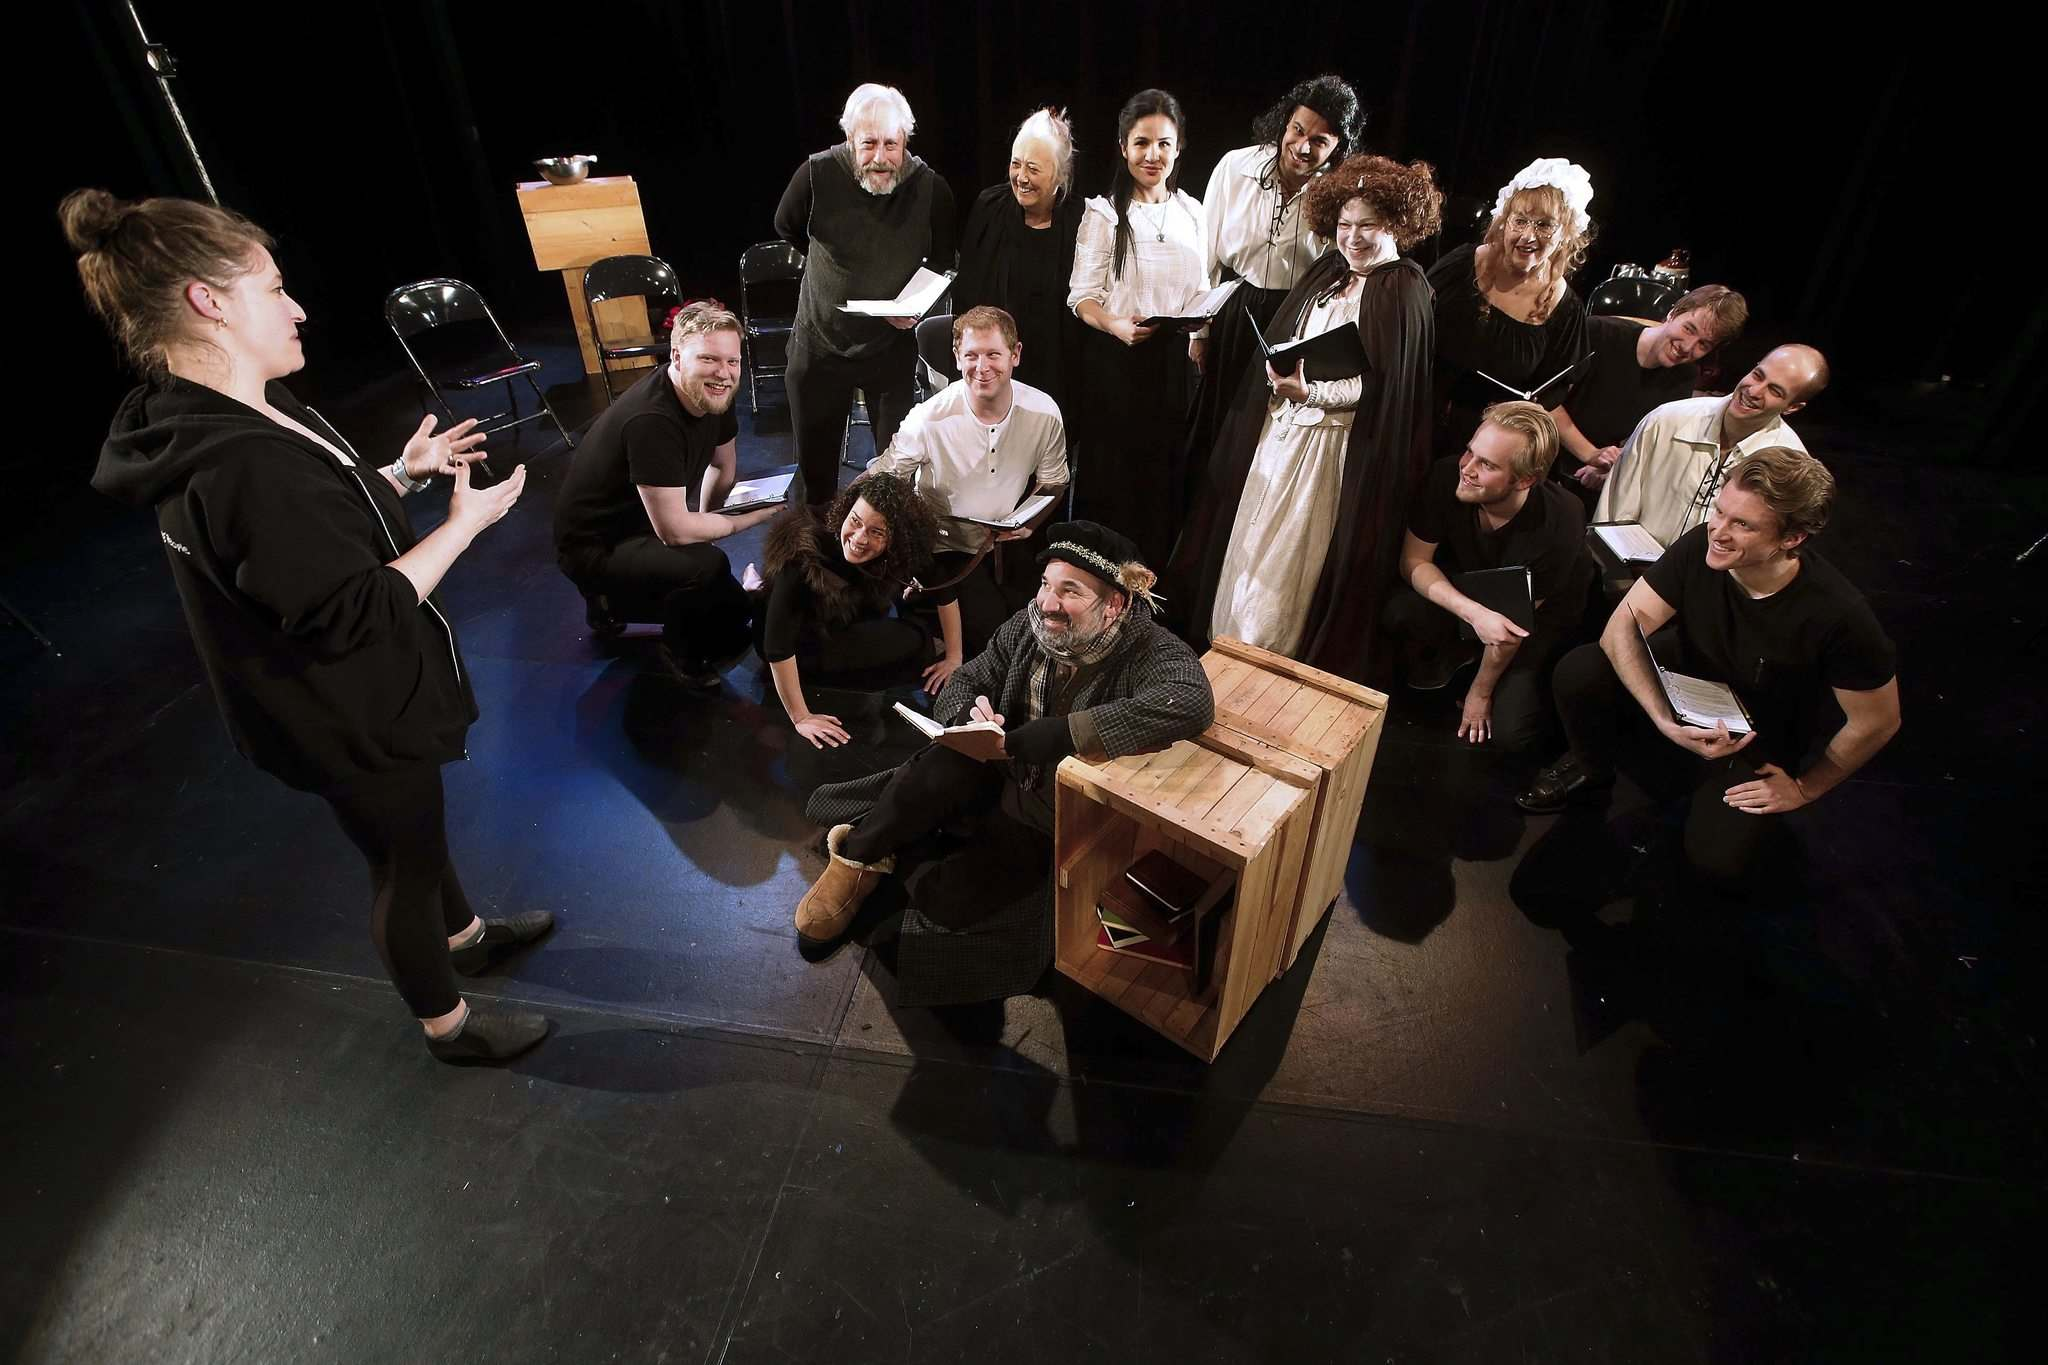 Katie German (left), director of Elizabeth Rex, says a six-day work week allows actors to immerse themselves in a role, but requires them to give up everything else. (John Woods / Winnipeg Free Press)